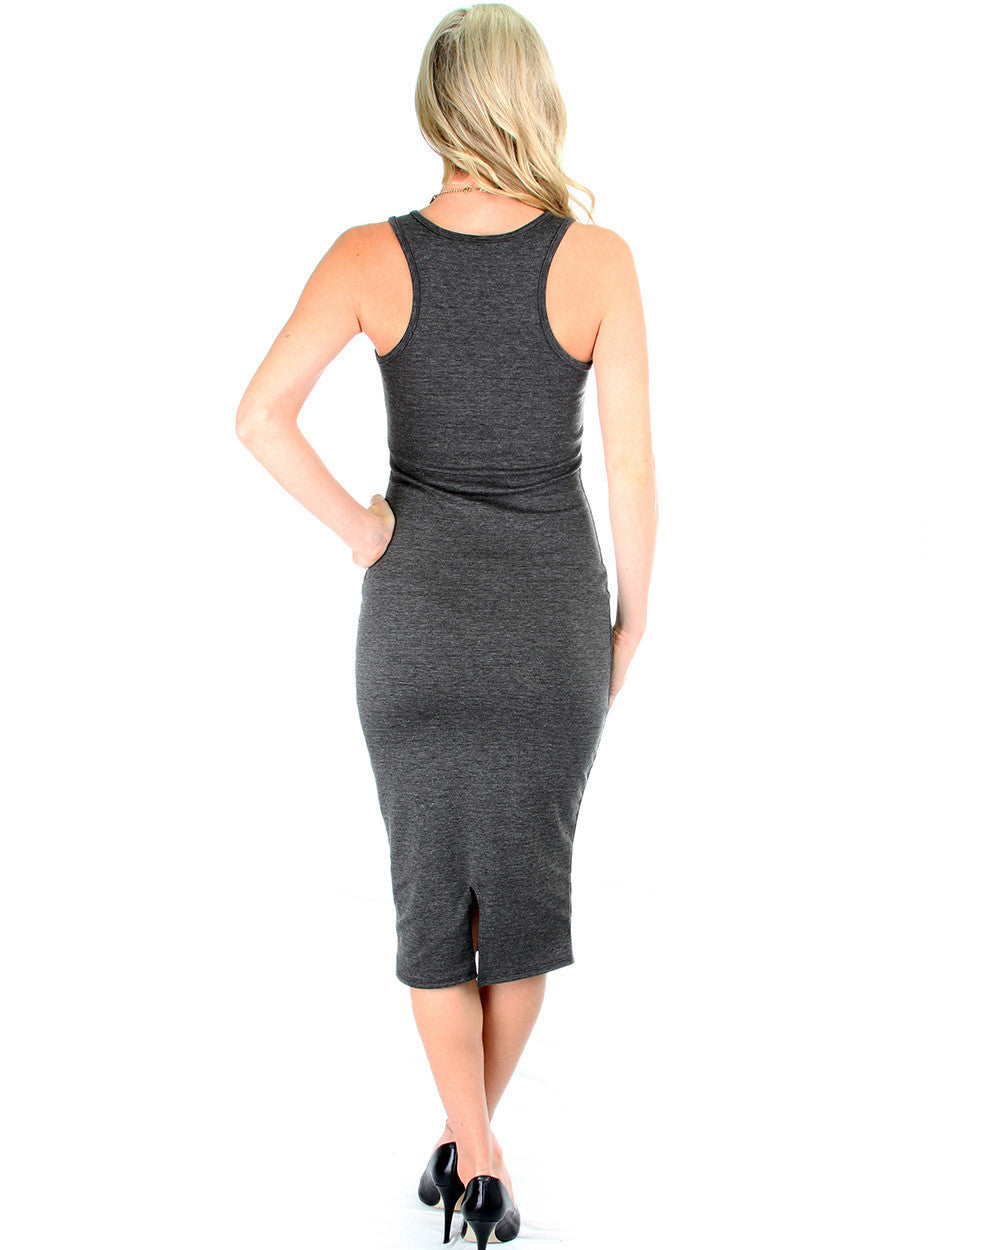 The Classic Bodycon Dress In Charcoal